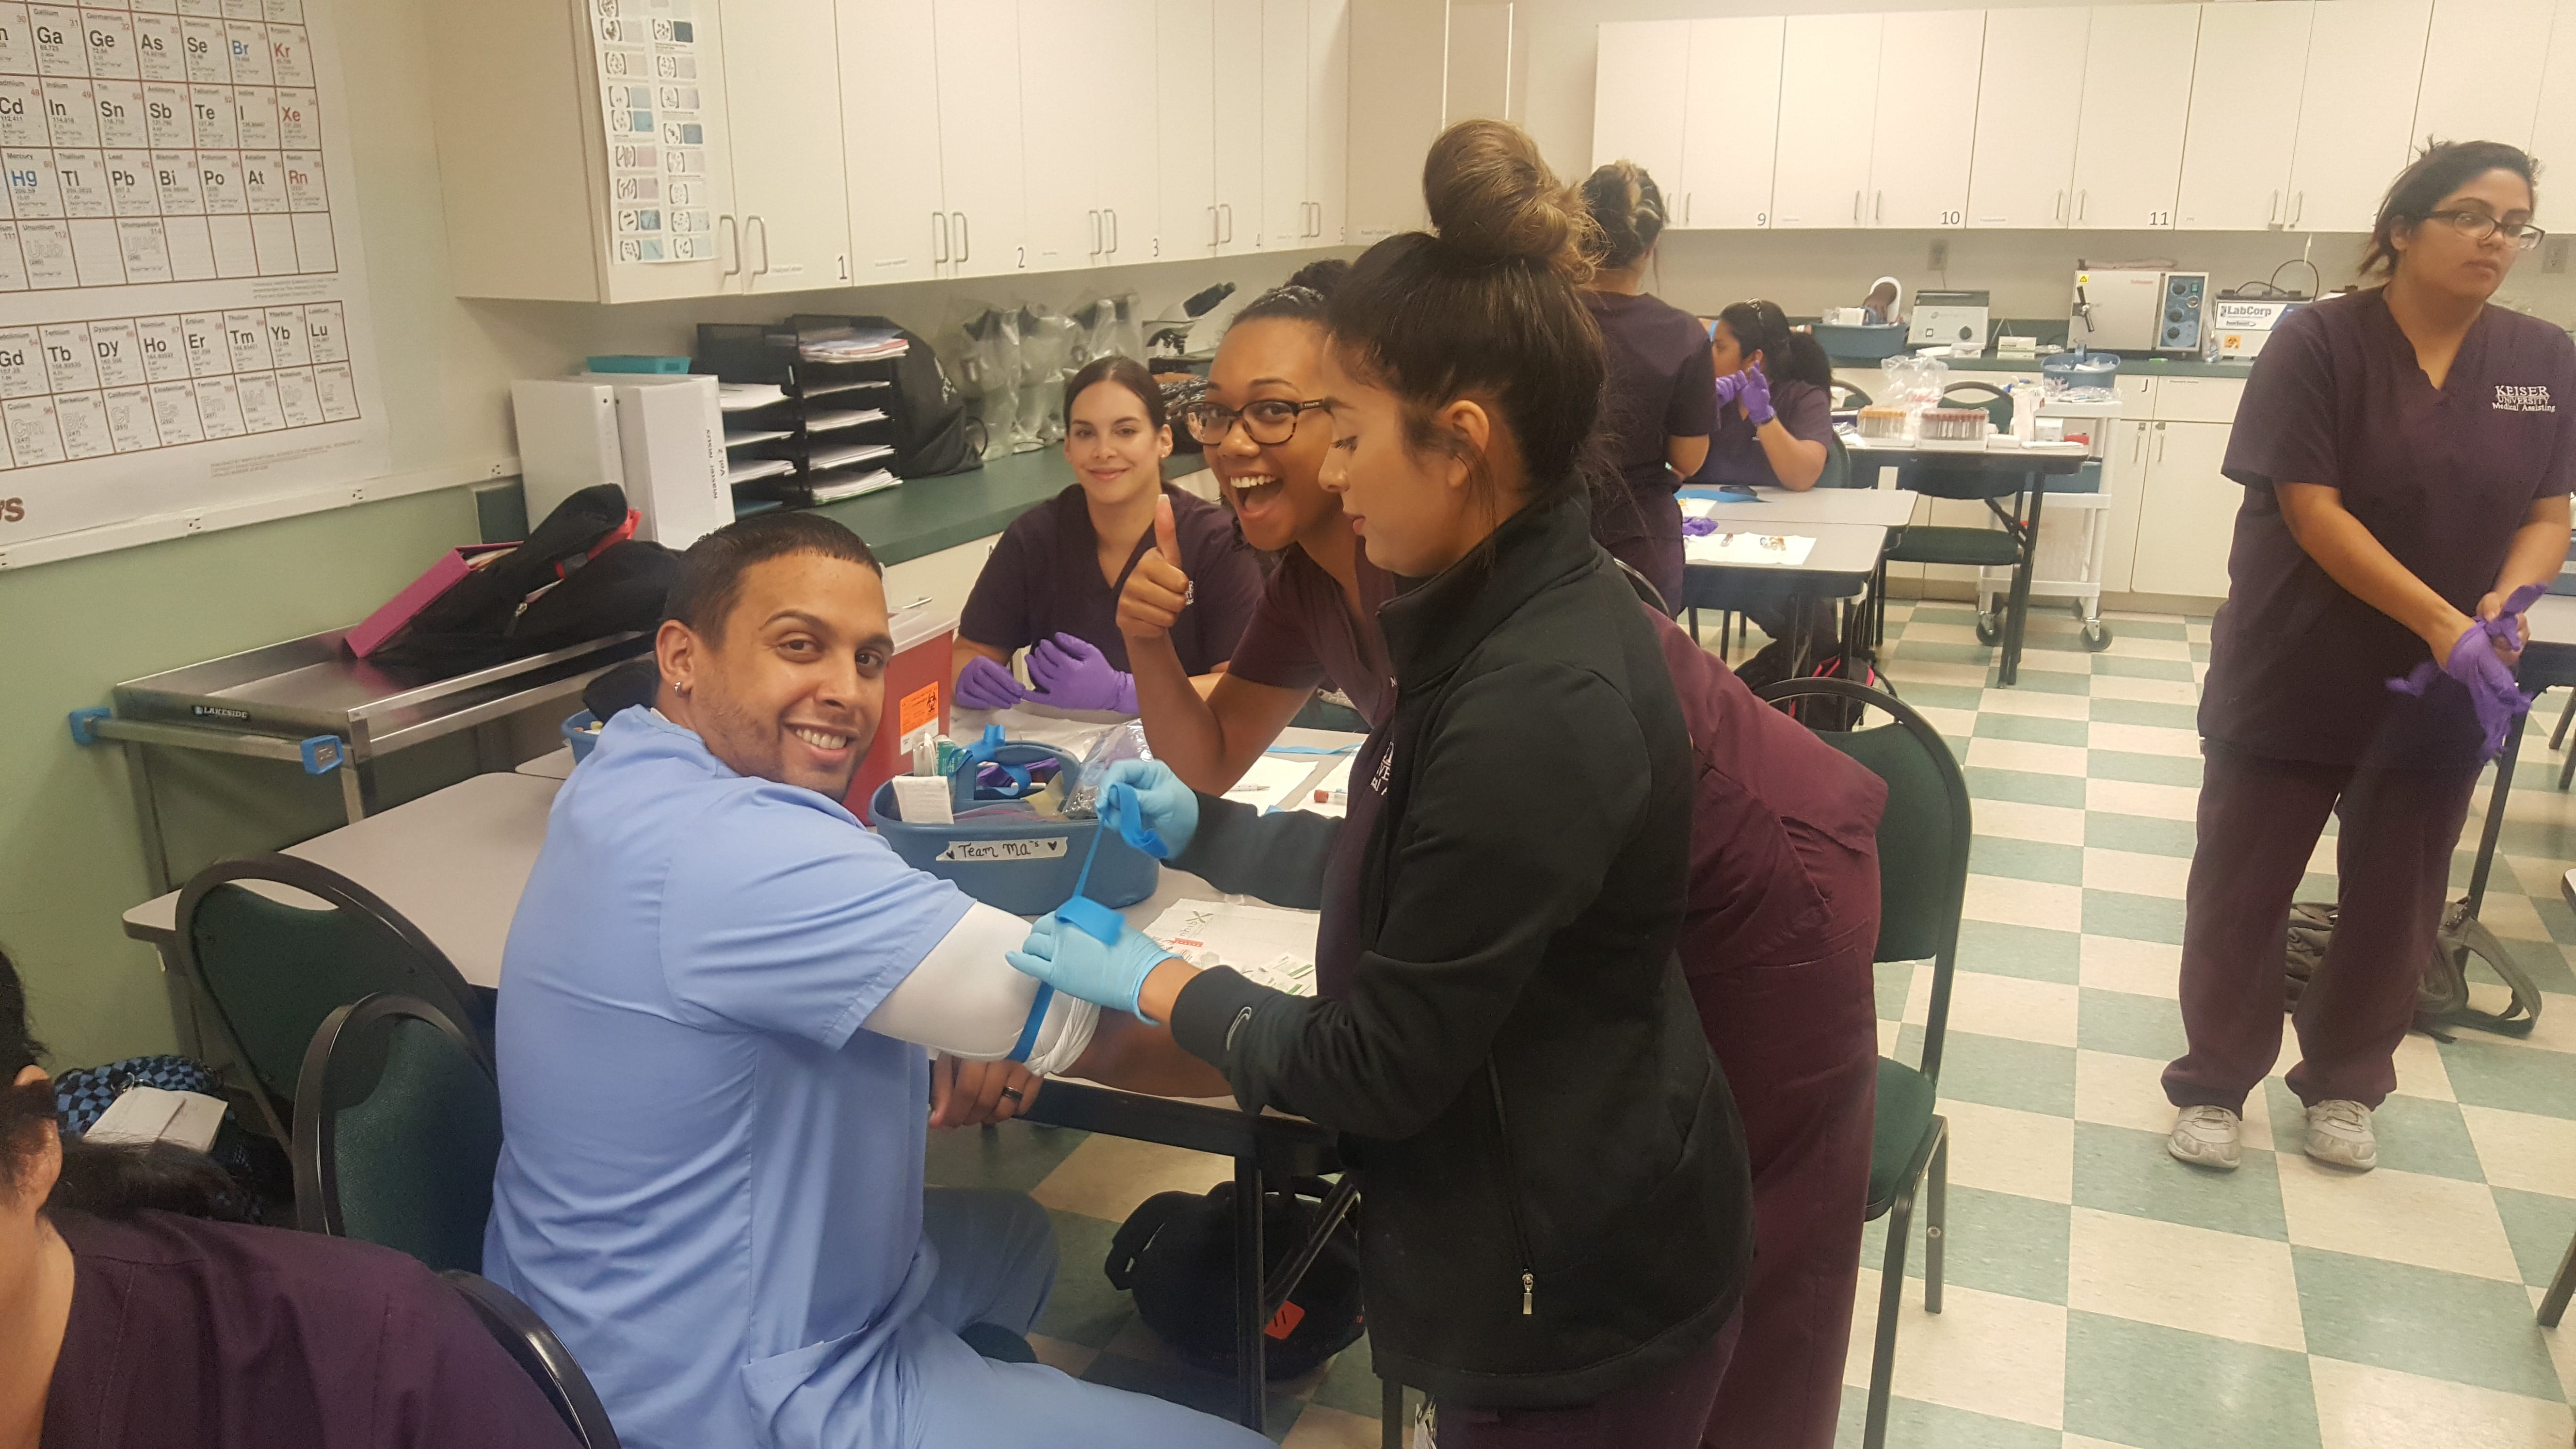 Orlando Medical Assisting And Medical Laboratory Technician Students